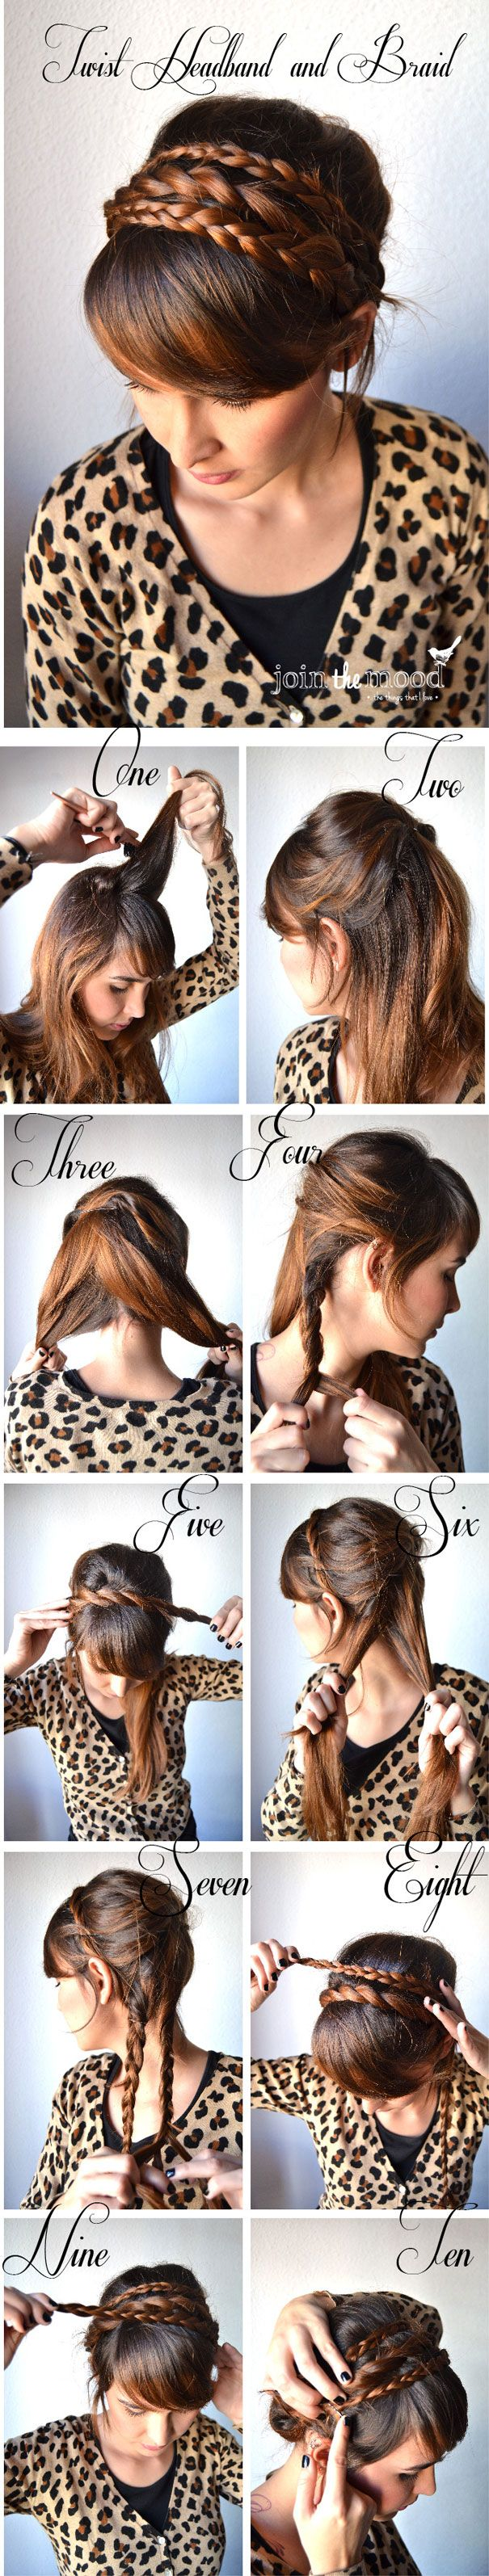 10 Step Braided Headband - #hairhowto for those holiday get-togethers later  Again,  it looks like a SW do to me. :D